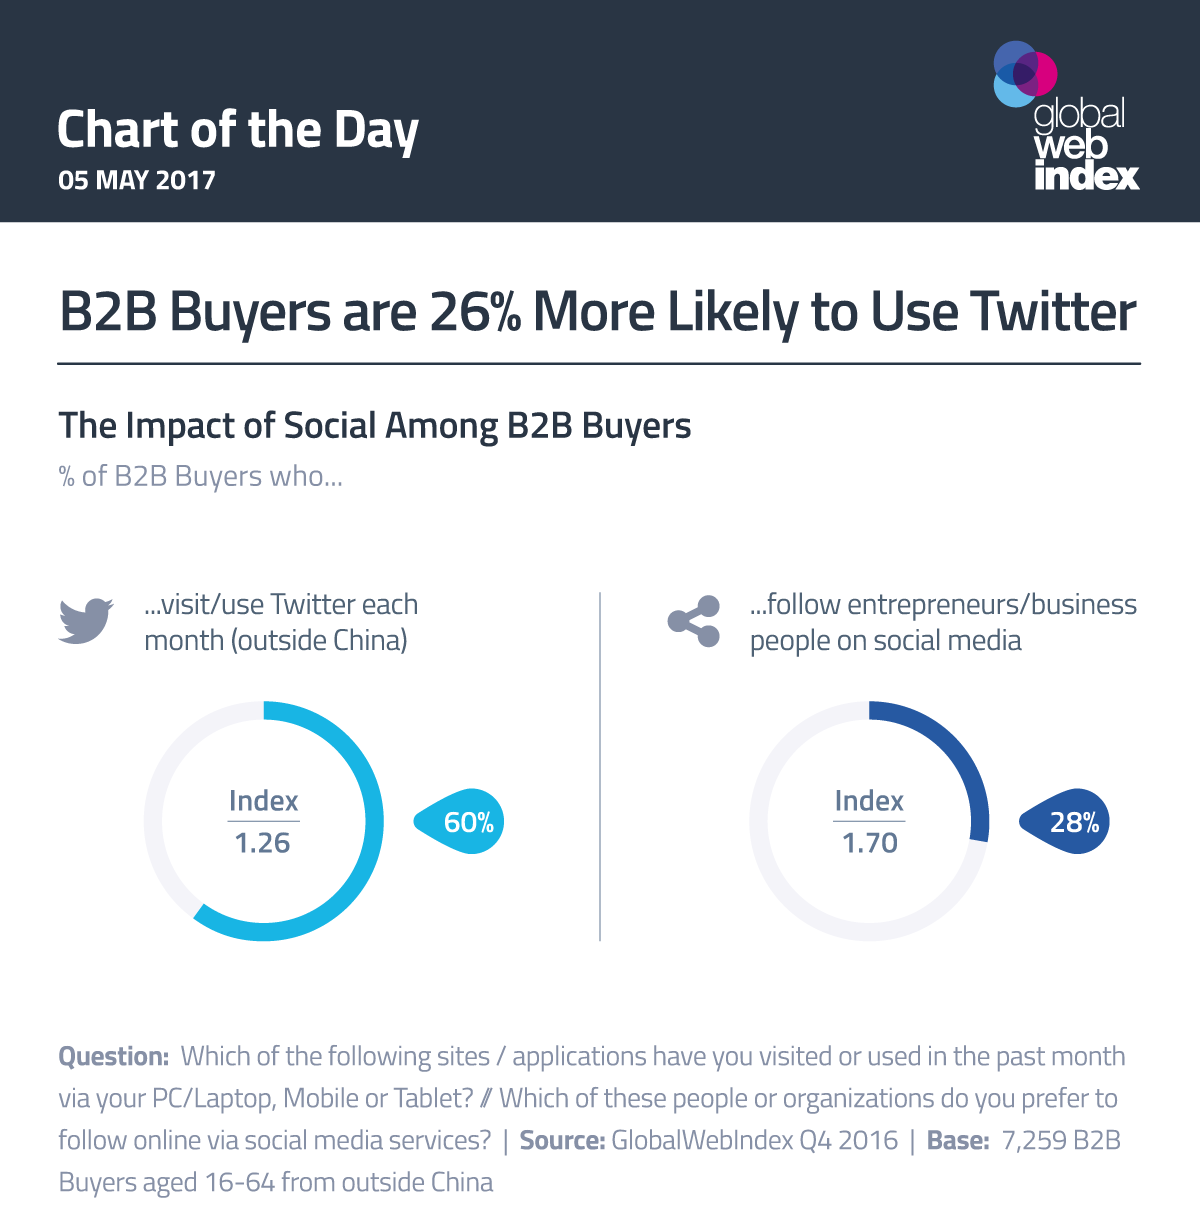 B2B Buyers are 26% More Likely to Use Twitter